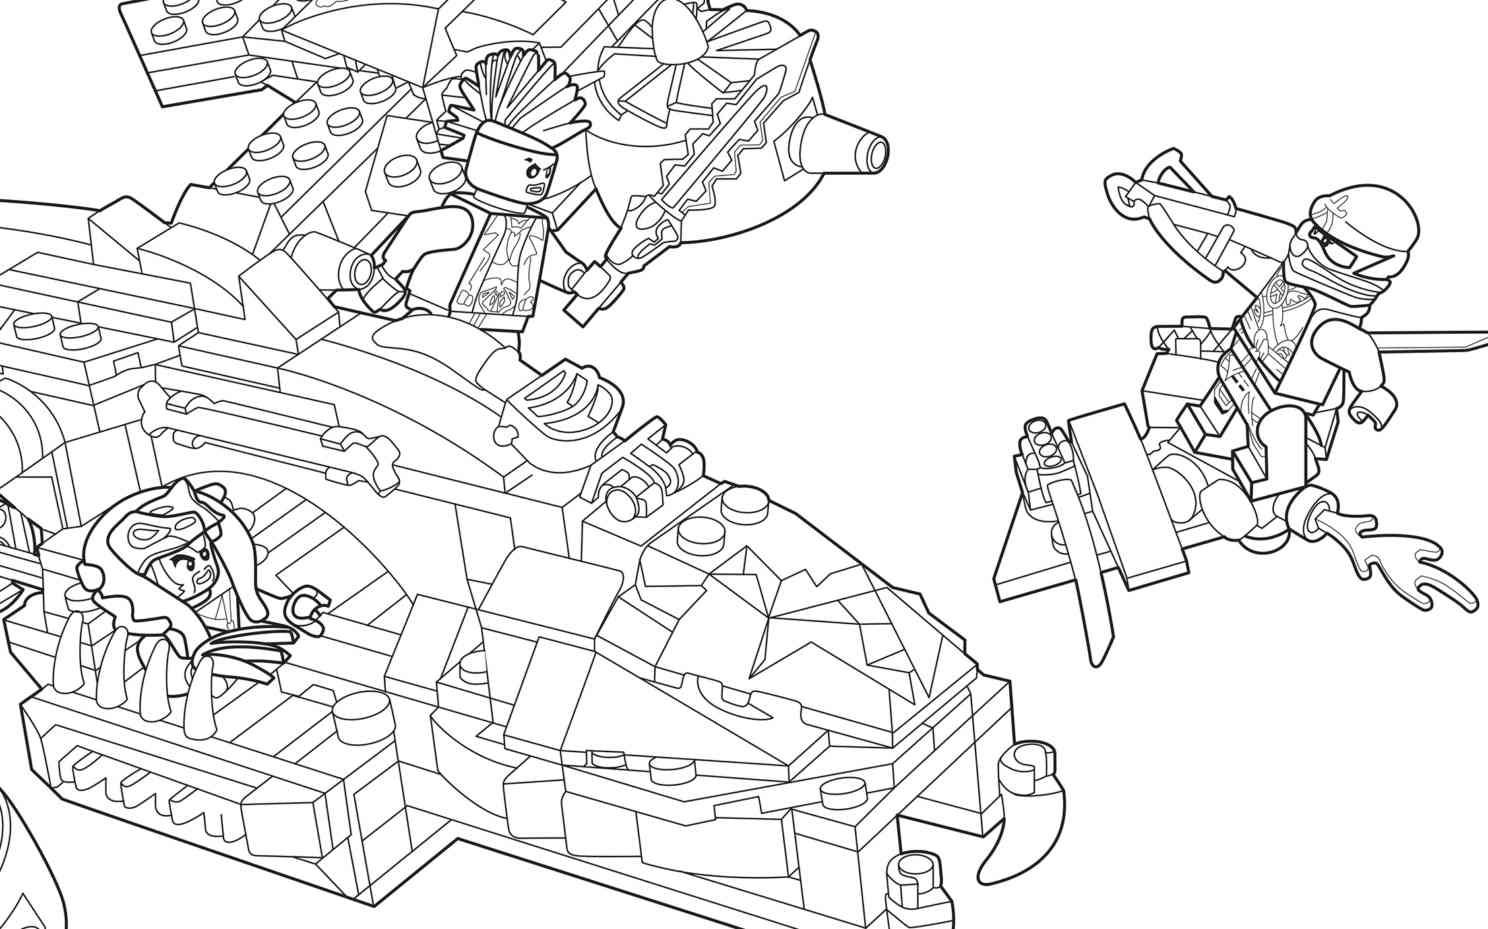 LEGO Ninjago 70746 Coloring Sheet